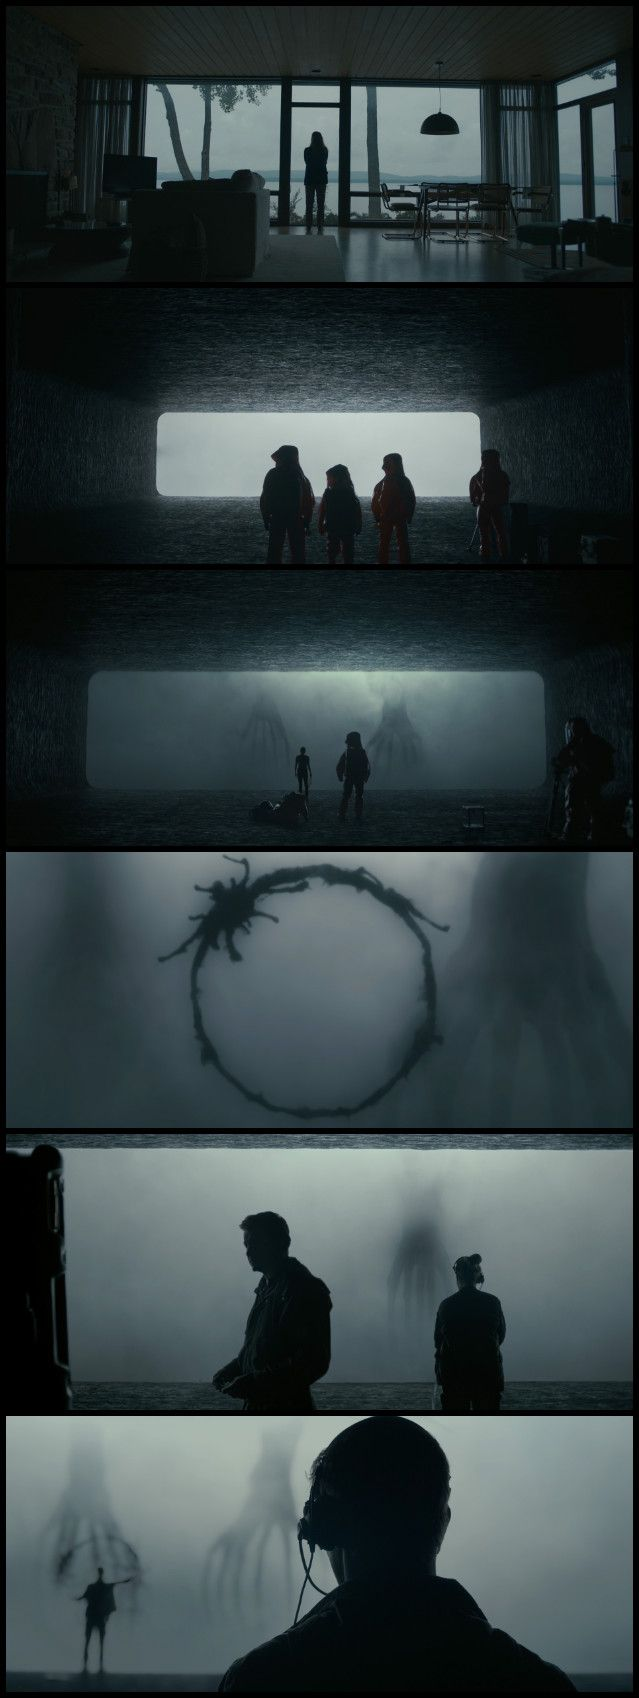 Arrival (2016) Director: Denis Villeneuve. Photography: Bradford Young.